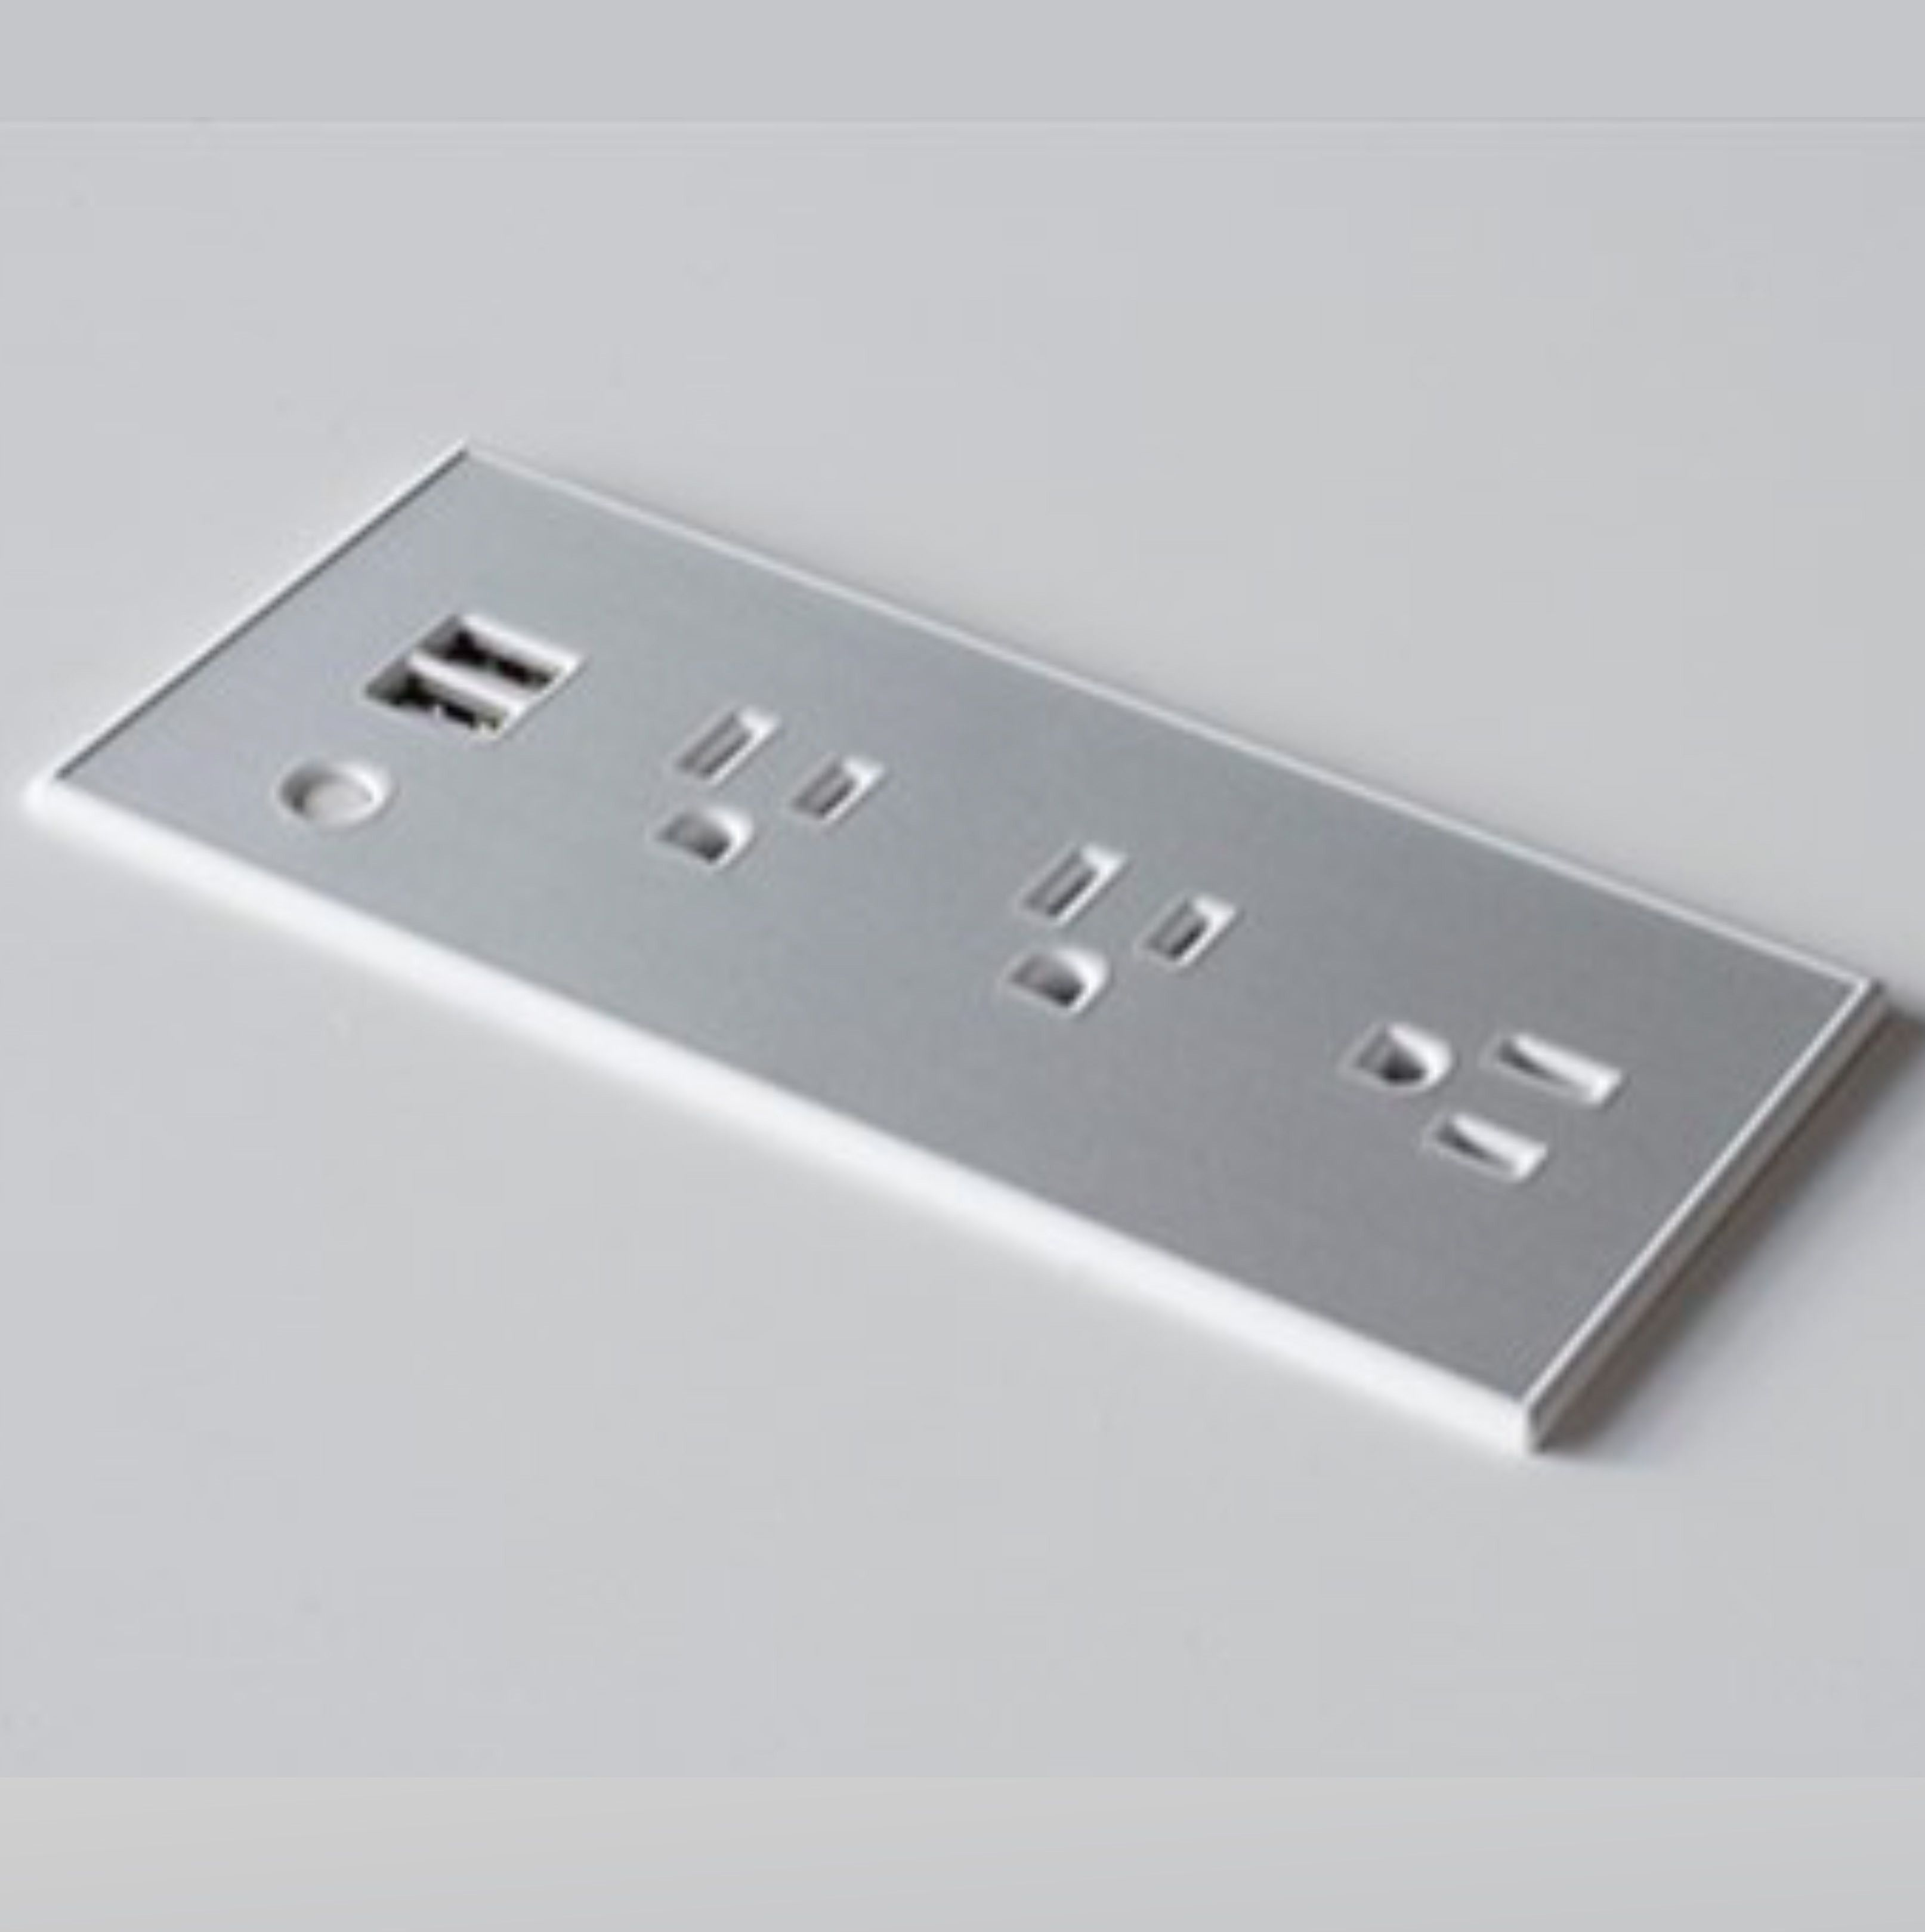 Flush Mount Power Strip With Outlets And Usb Ports Flush Mount